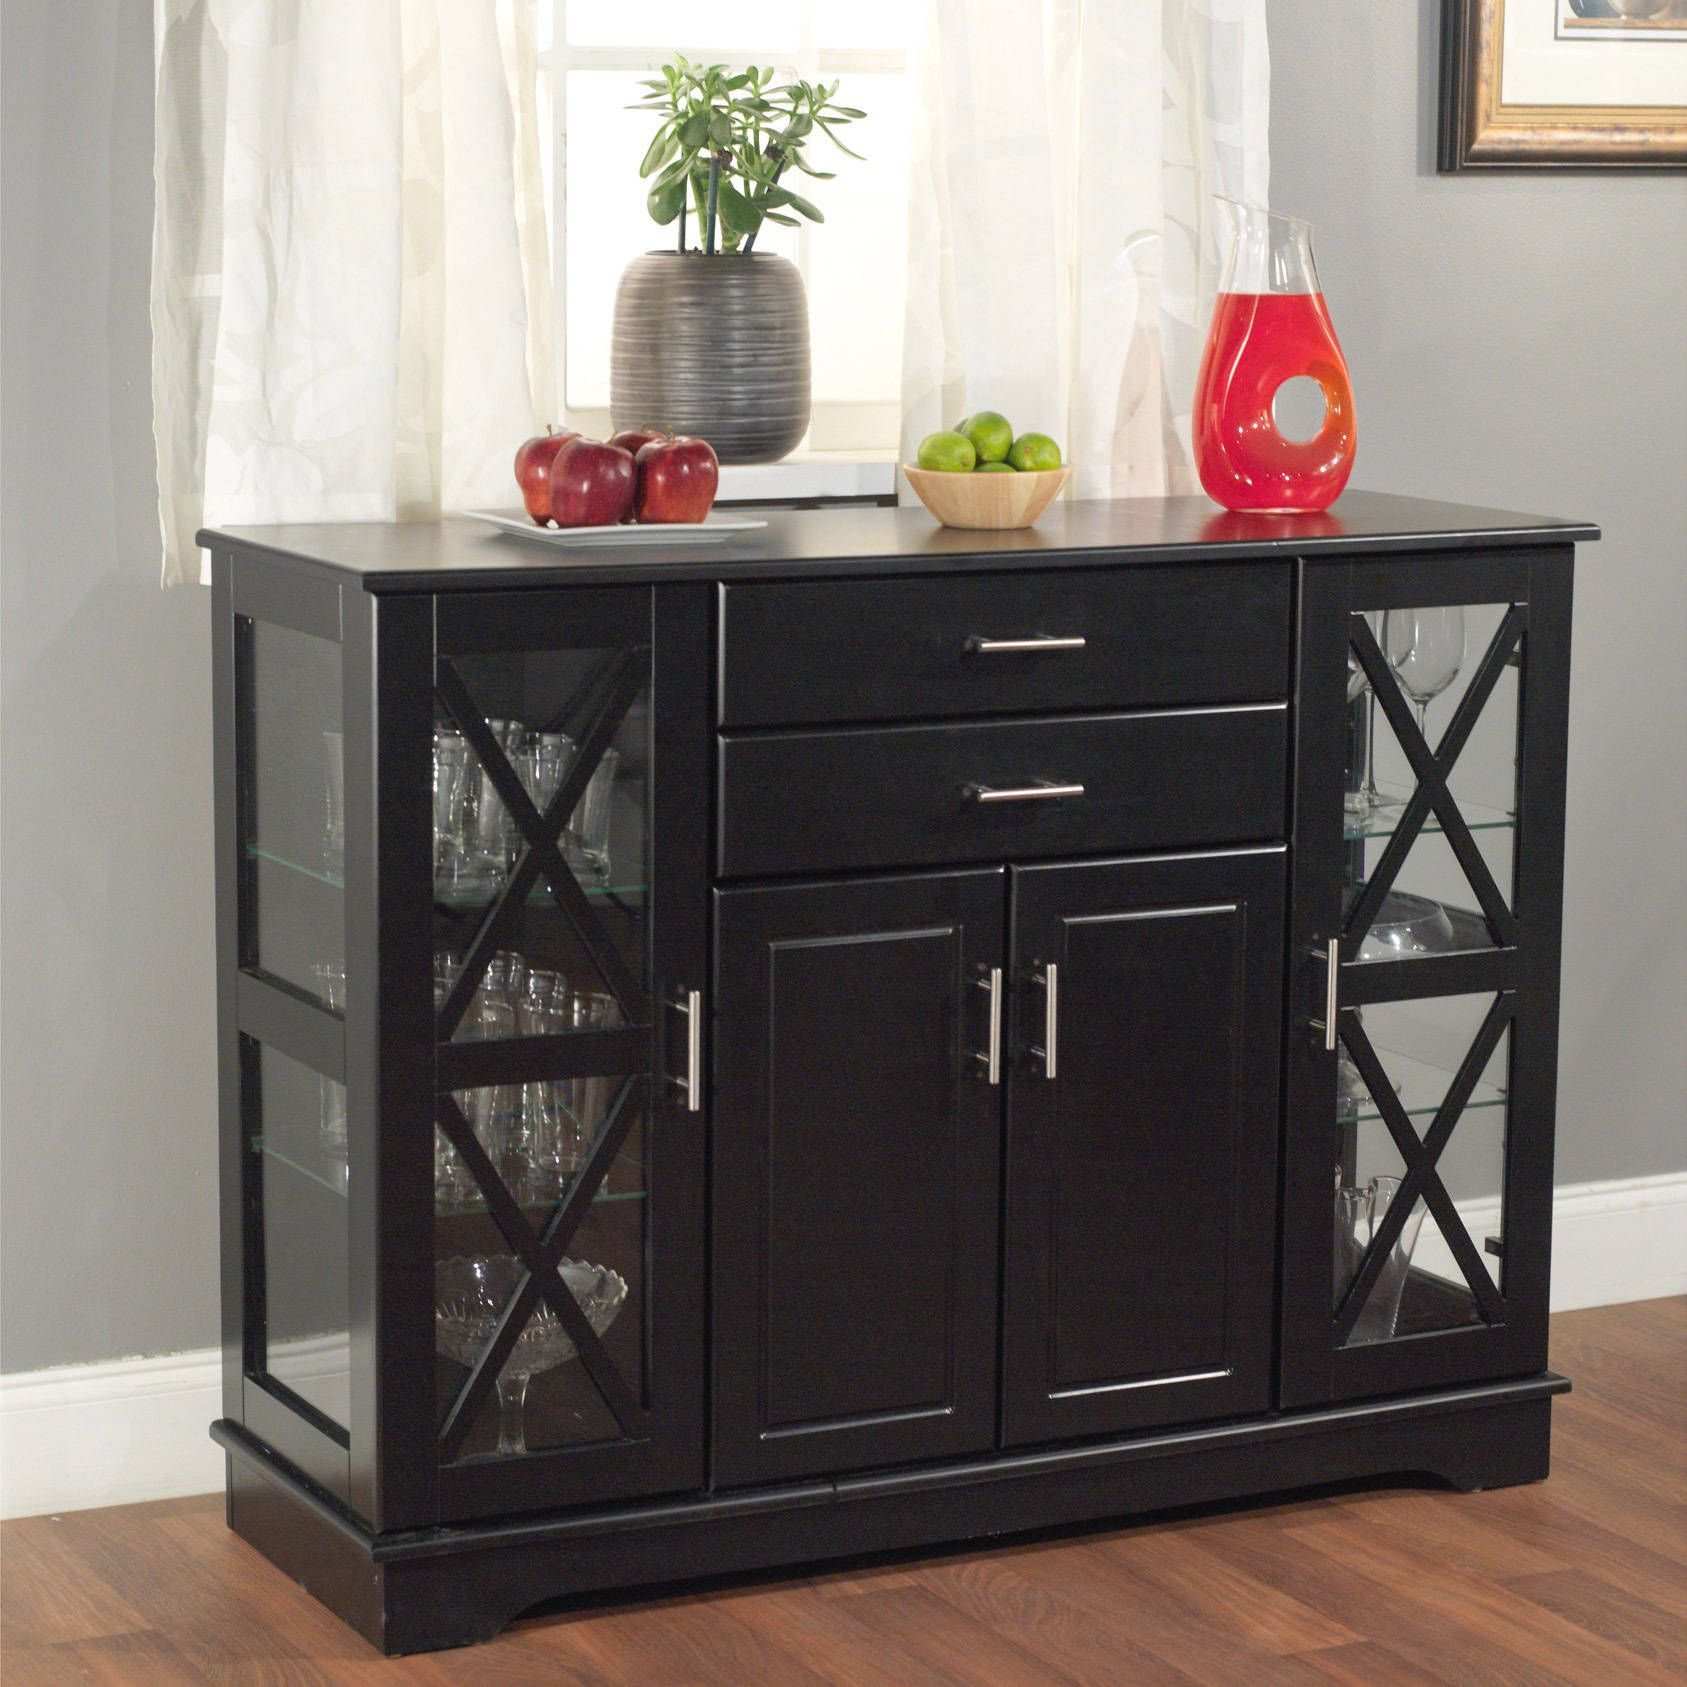 Buffets Sideboards And China Cabinets Are Ideal For Displaying Storing Fine